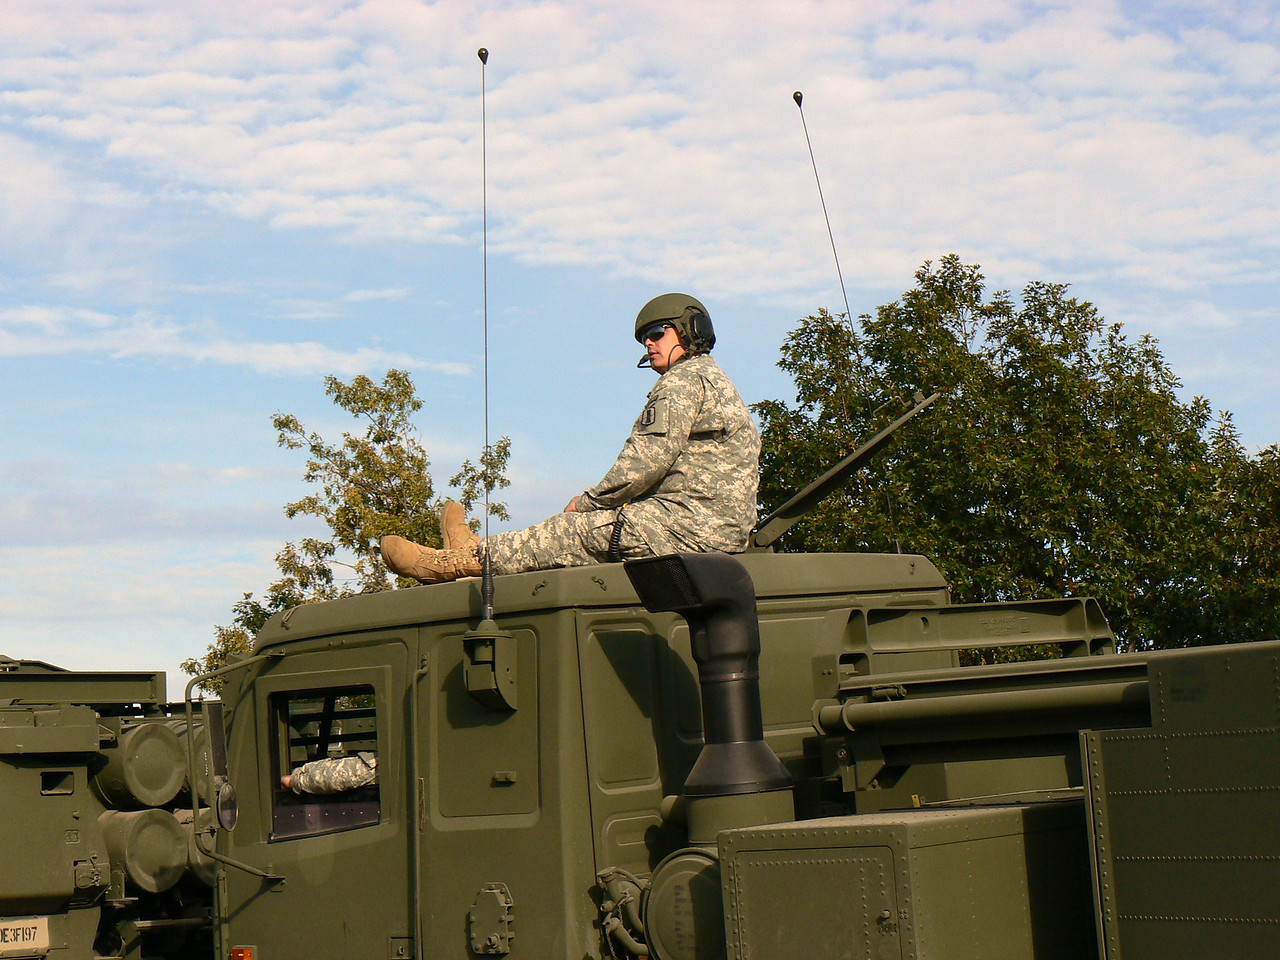 SSG Oullette, Launcher 21